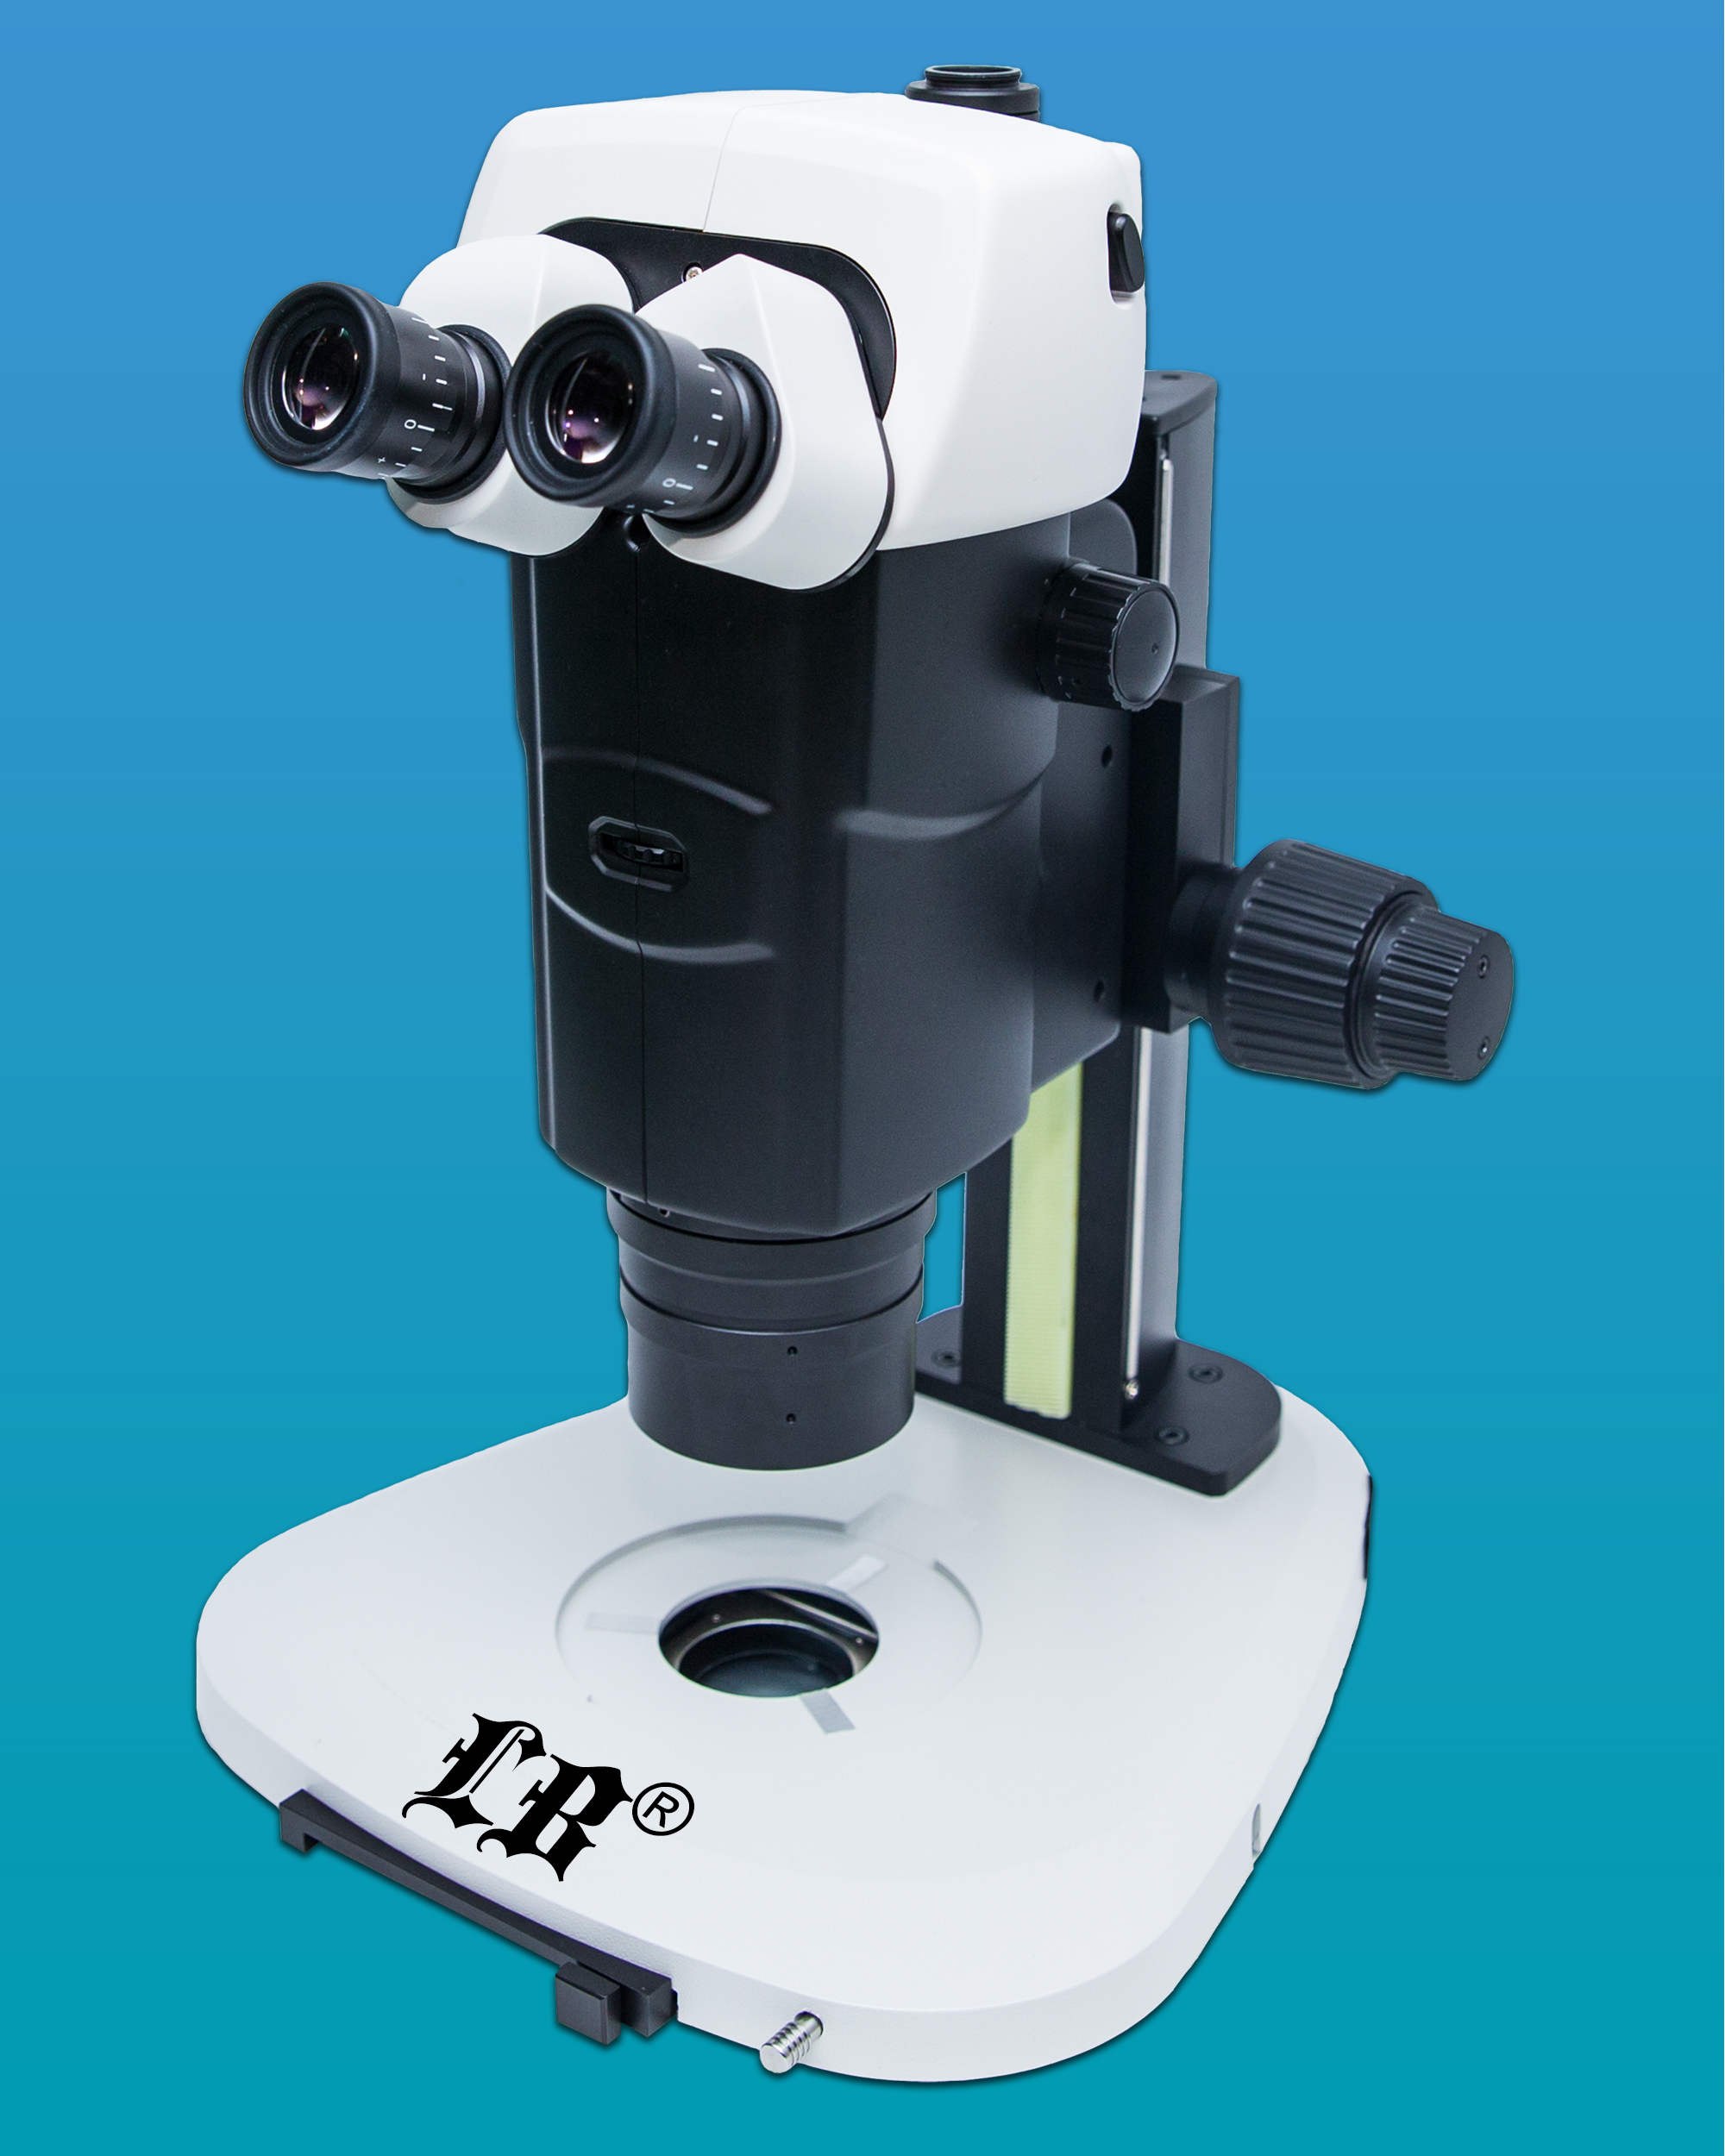 [LB-390] Parallel Light Zoom Trinocular Stereo Microscope with Infinite Optical System and Plan Apochromatic Objective for Excellent Ergonomic System